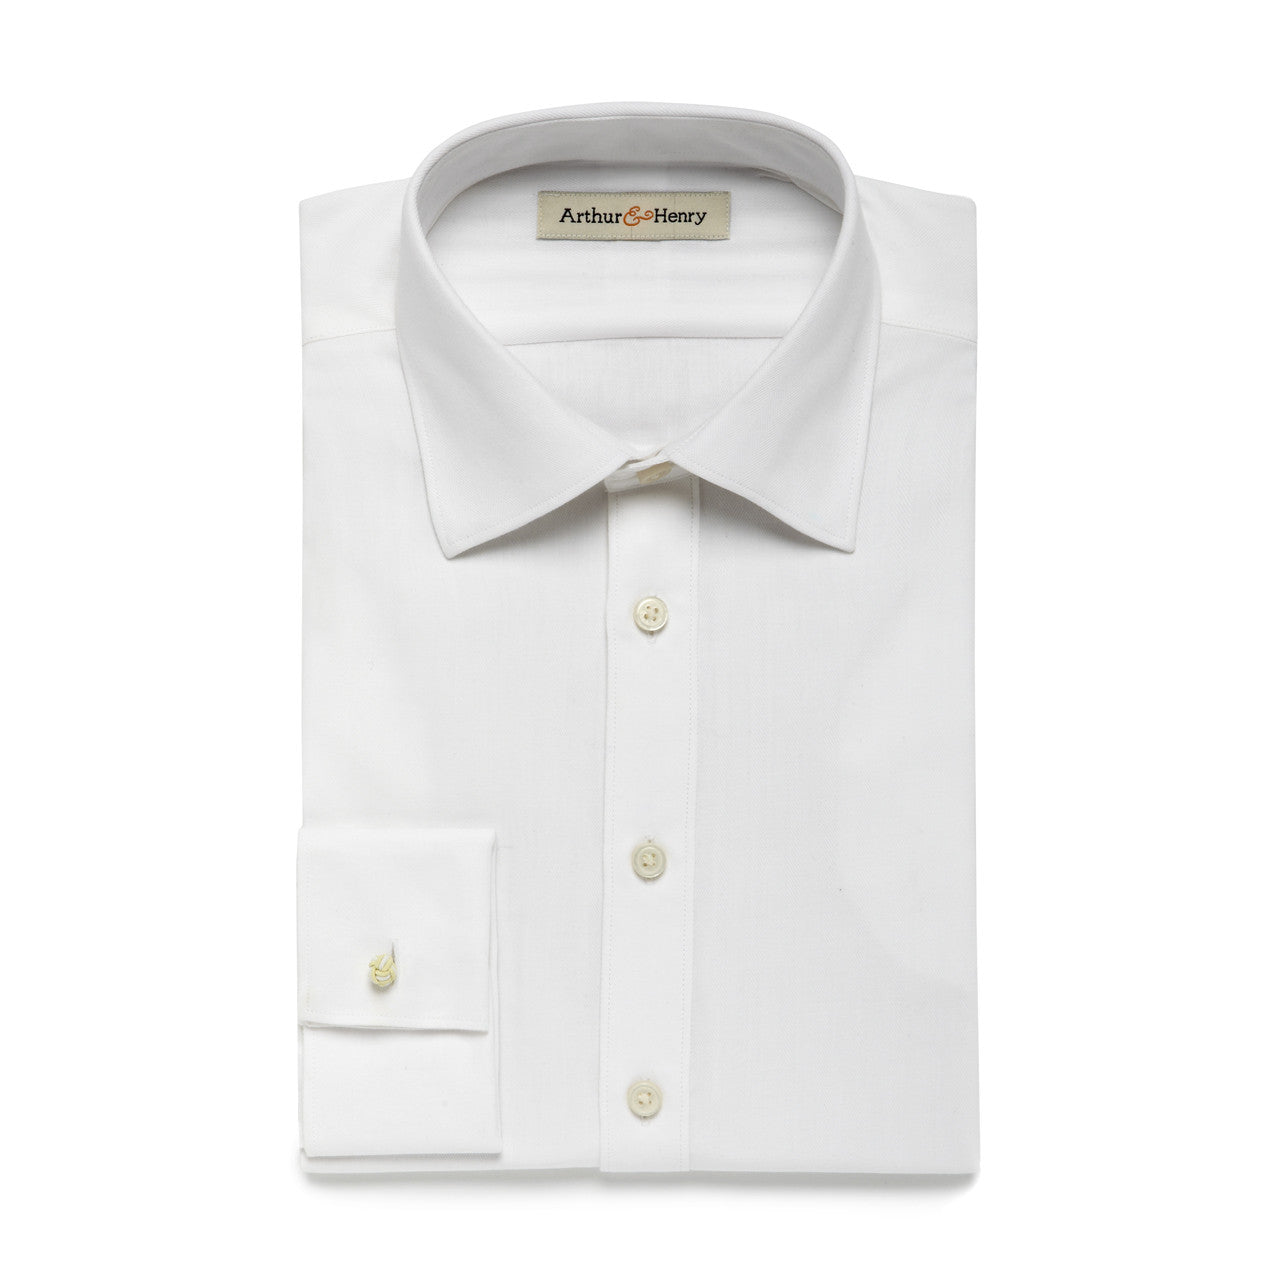 White organic cotton formal men's shirt